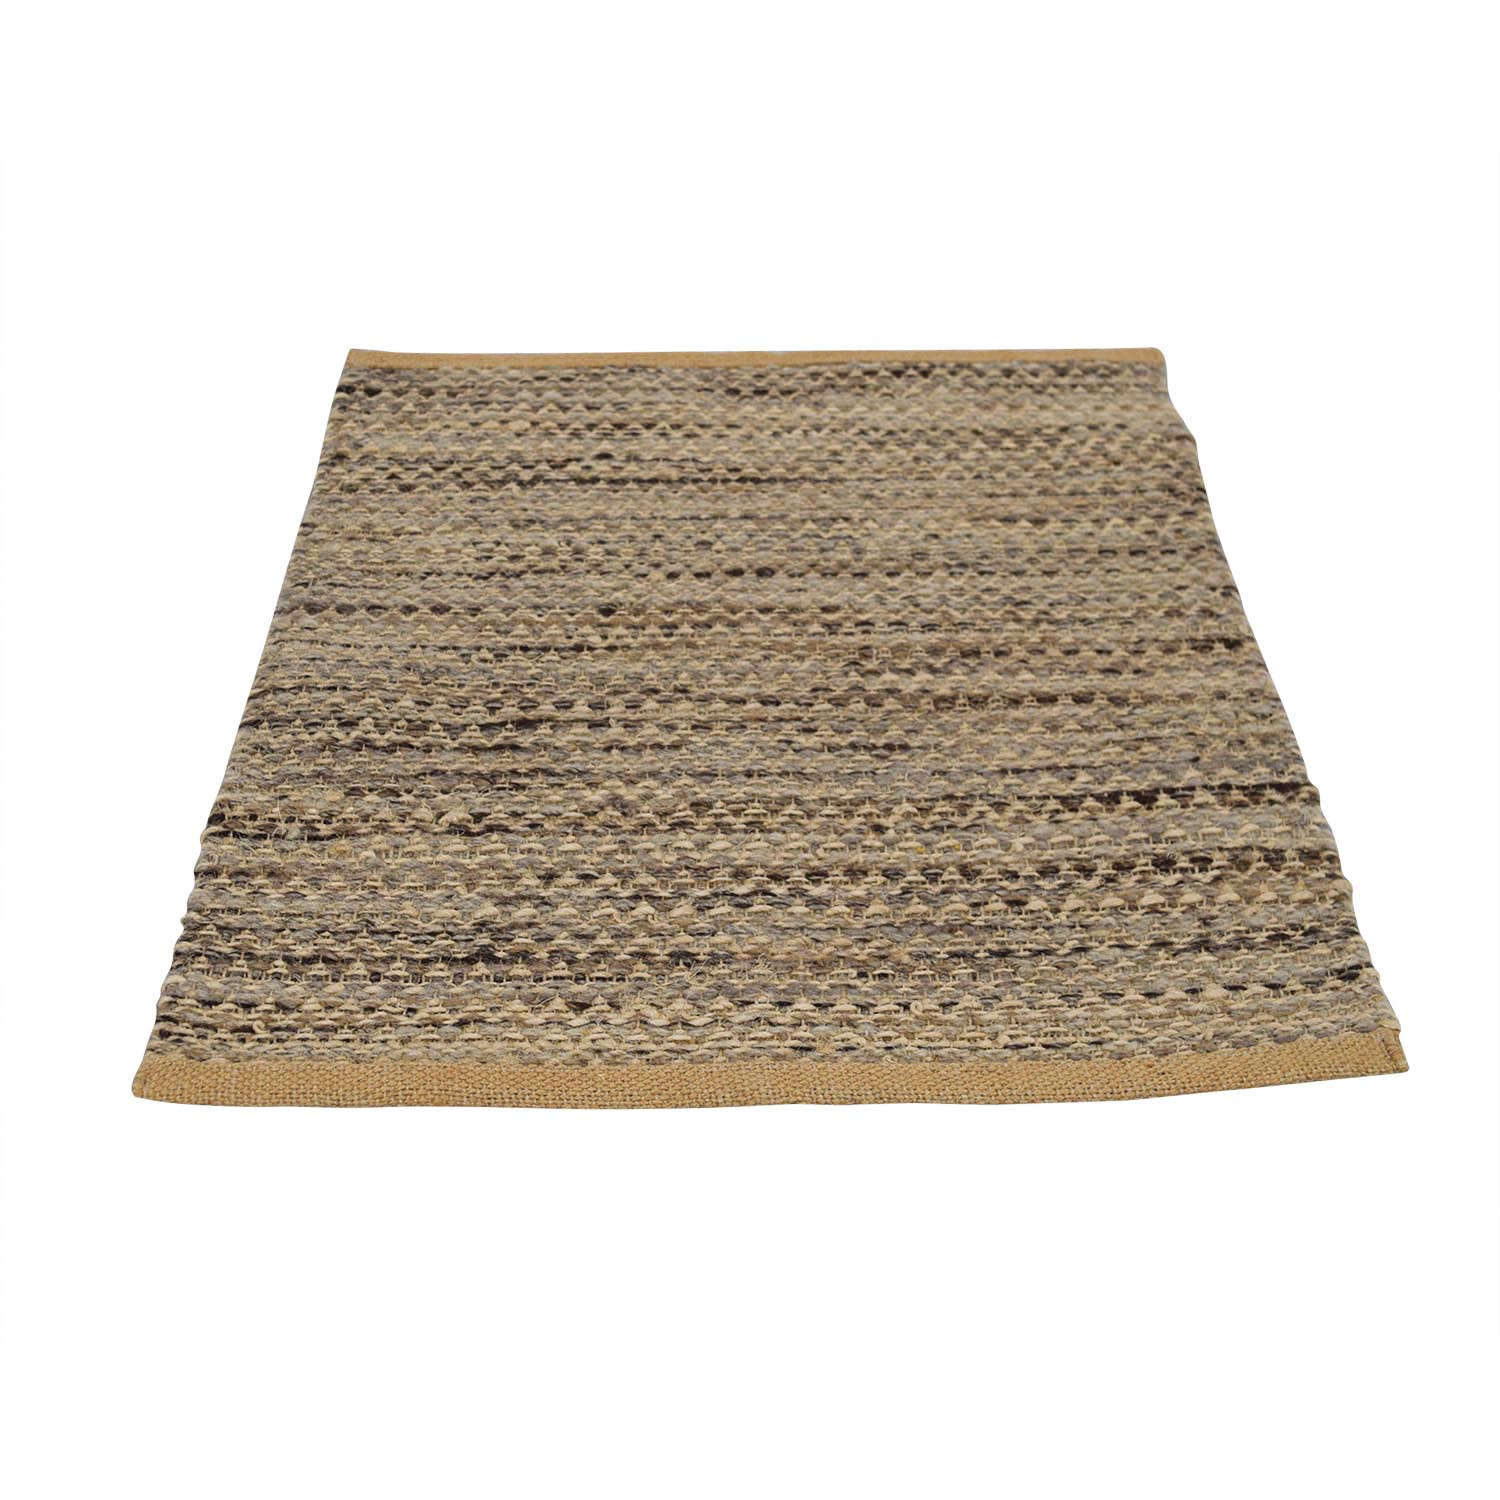 Obeetee Brown and Beige Entry Rug sale